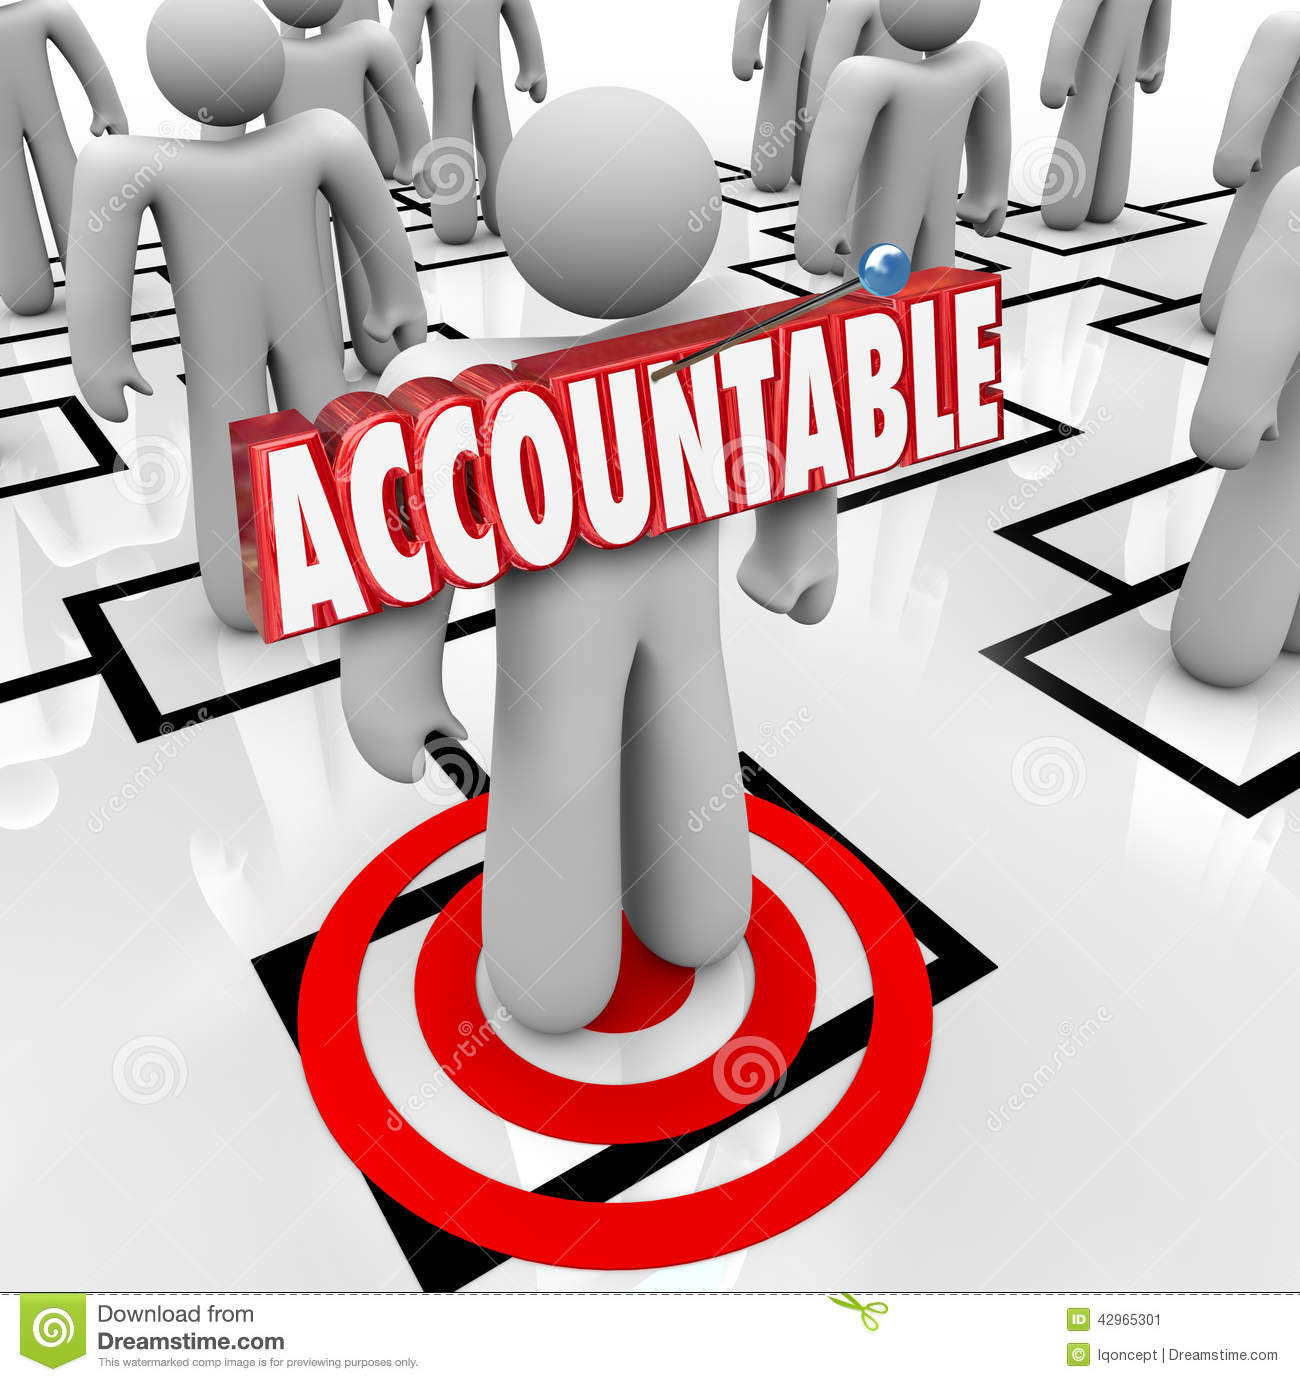 Accountability clipart 20 free Cliparts | Download images ...